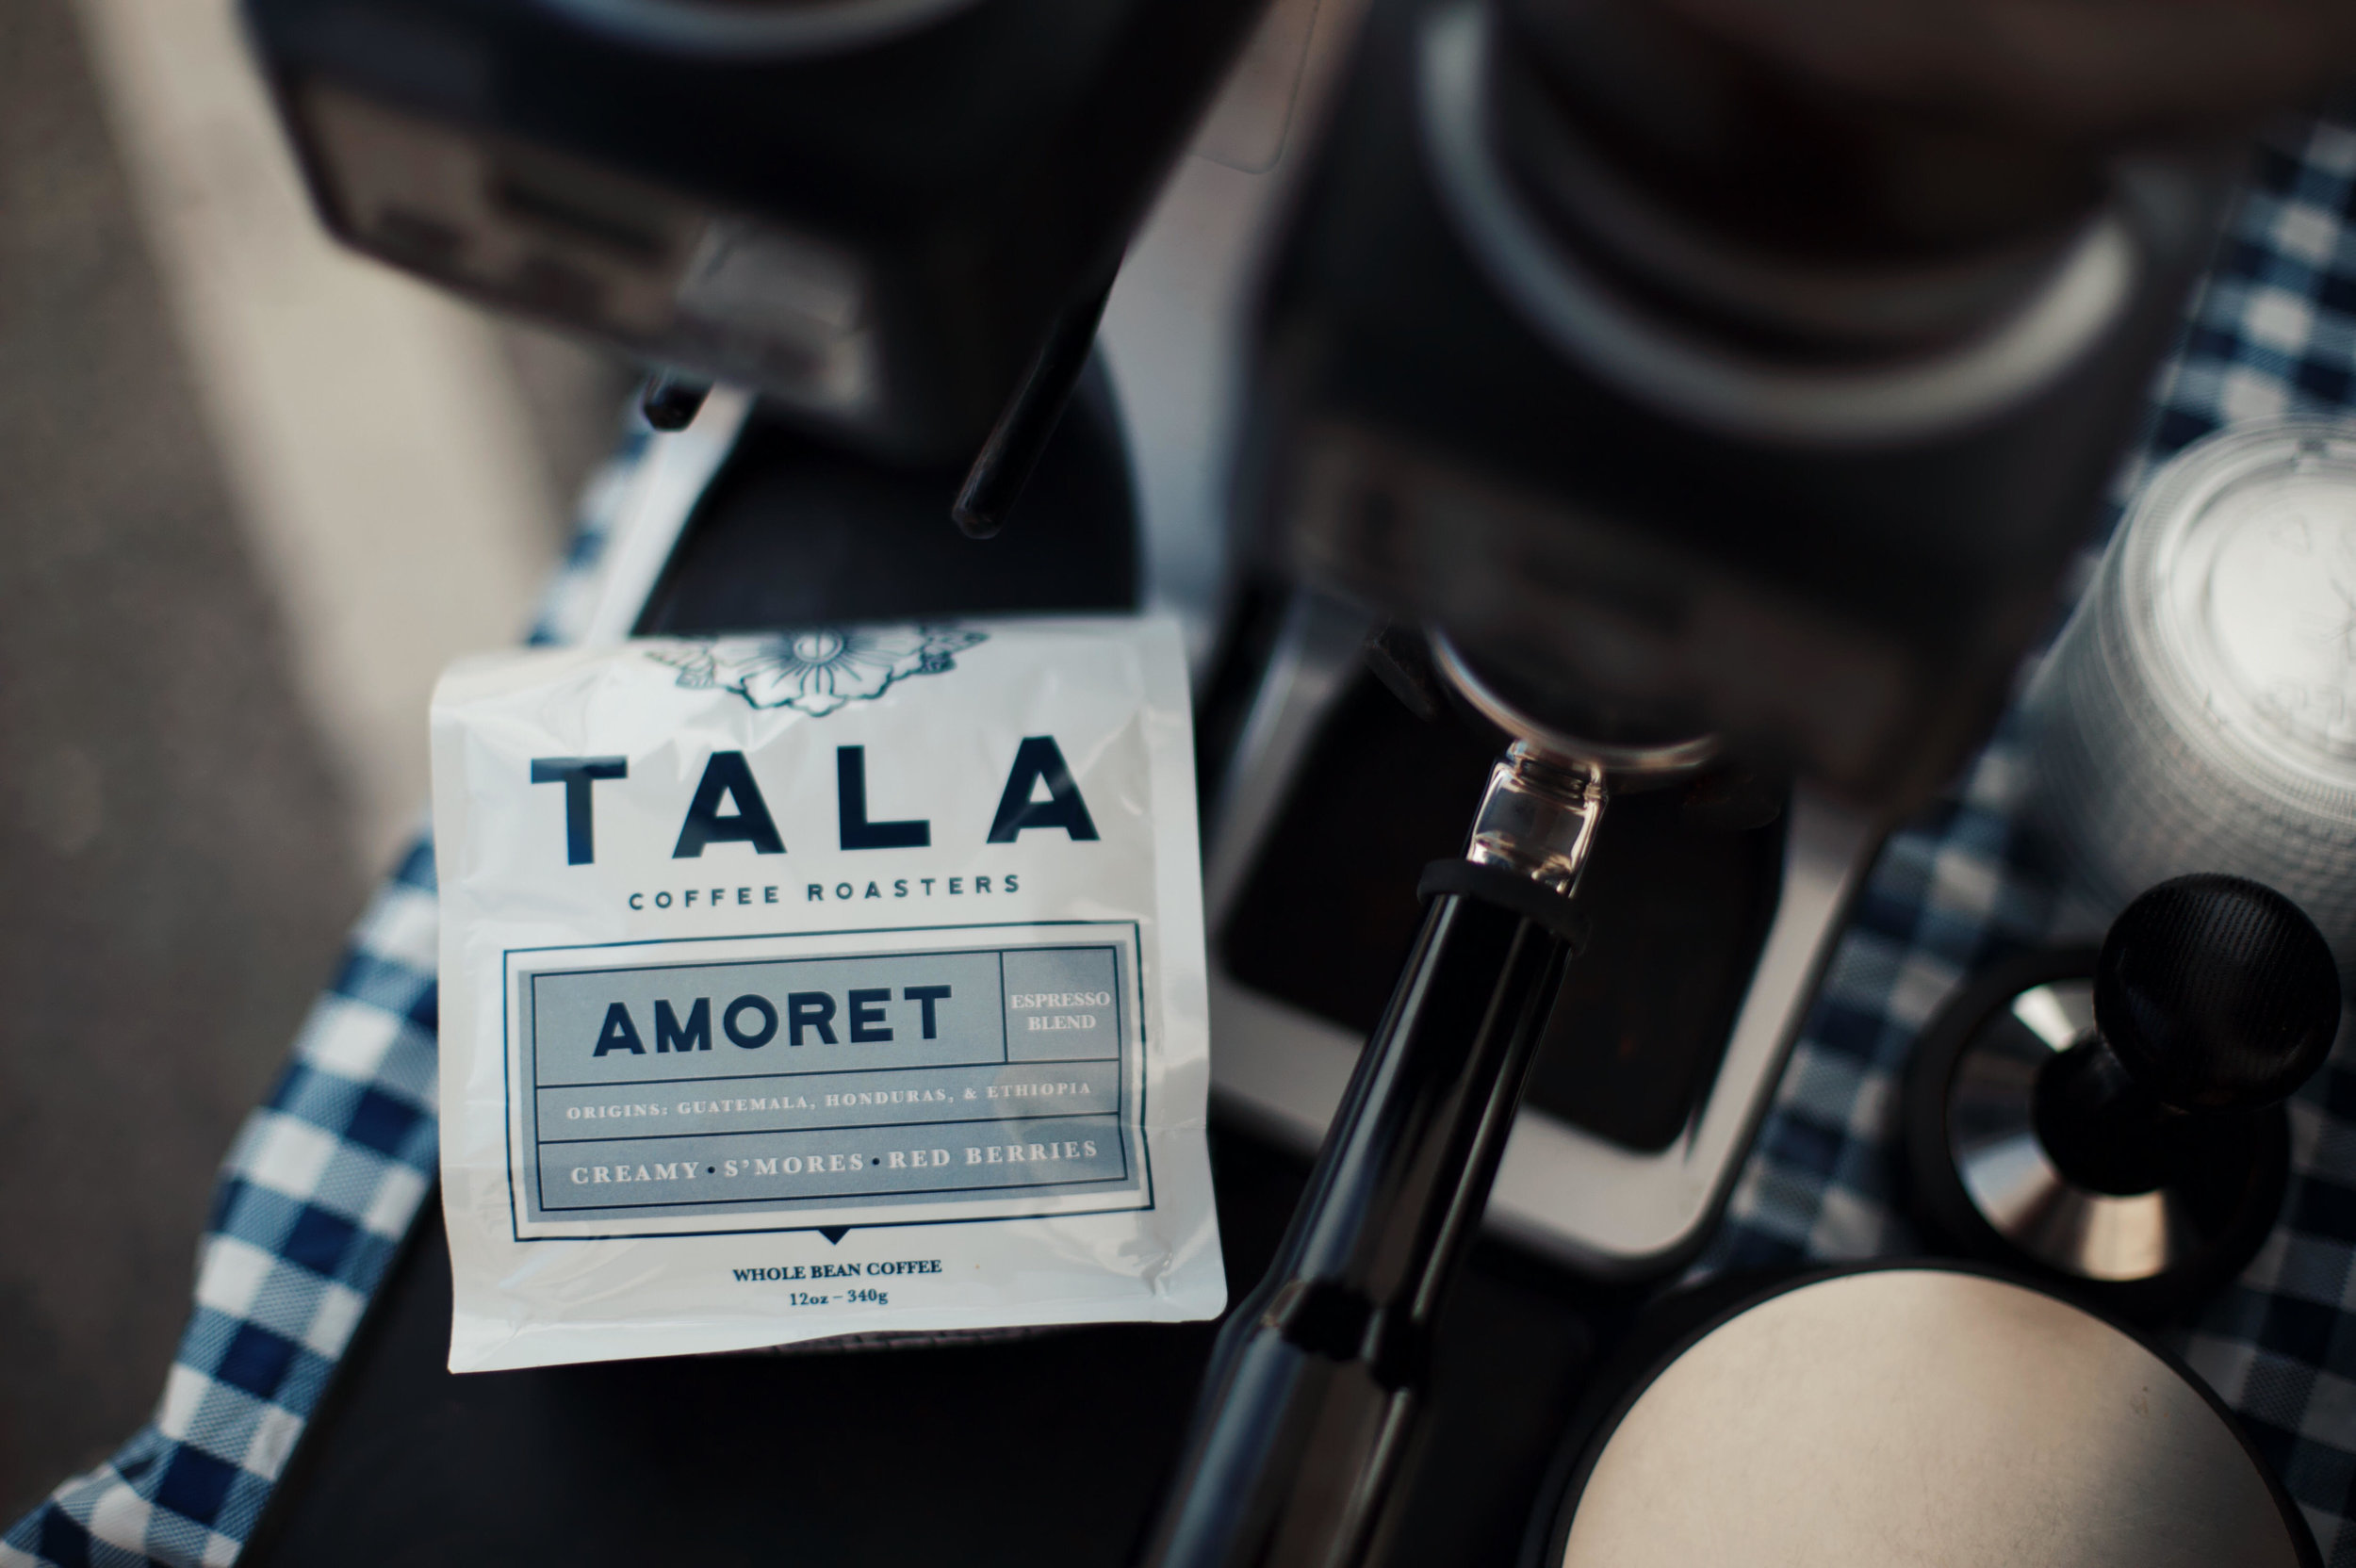 Amoret Espresso blend has a deep body with lots of sweetness like rich maple syrup. It has just a hint of fruitiness for a full well-rounded flavor. Enjoy as espresso or drip coffee.